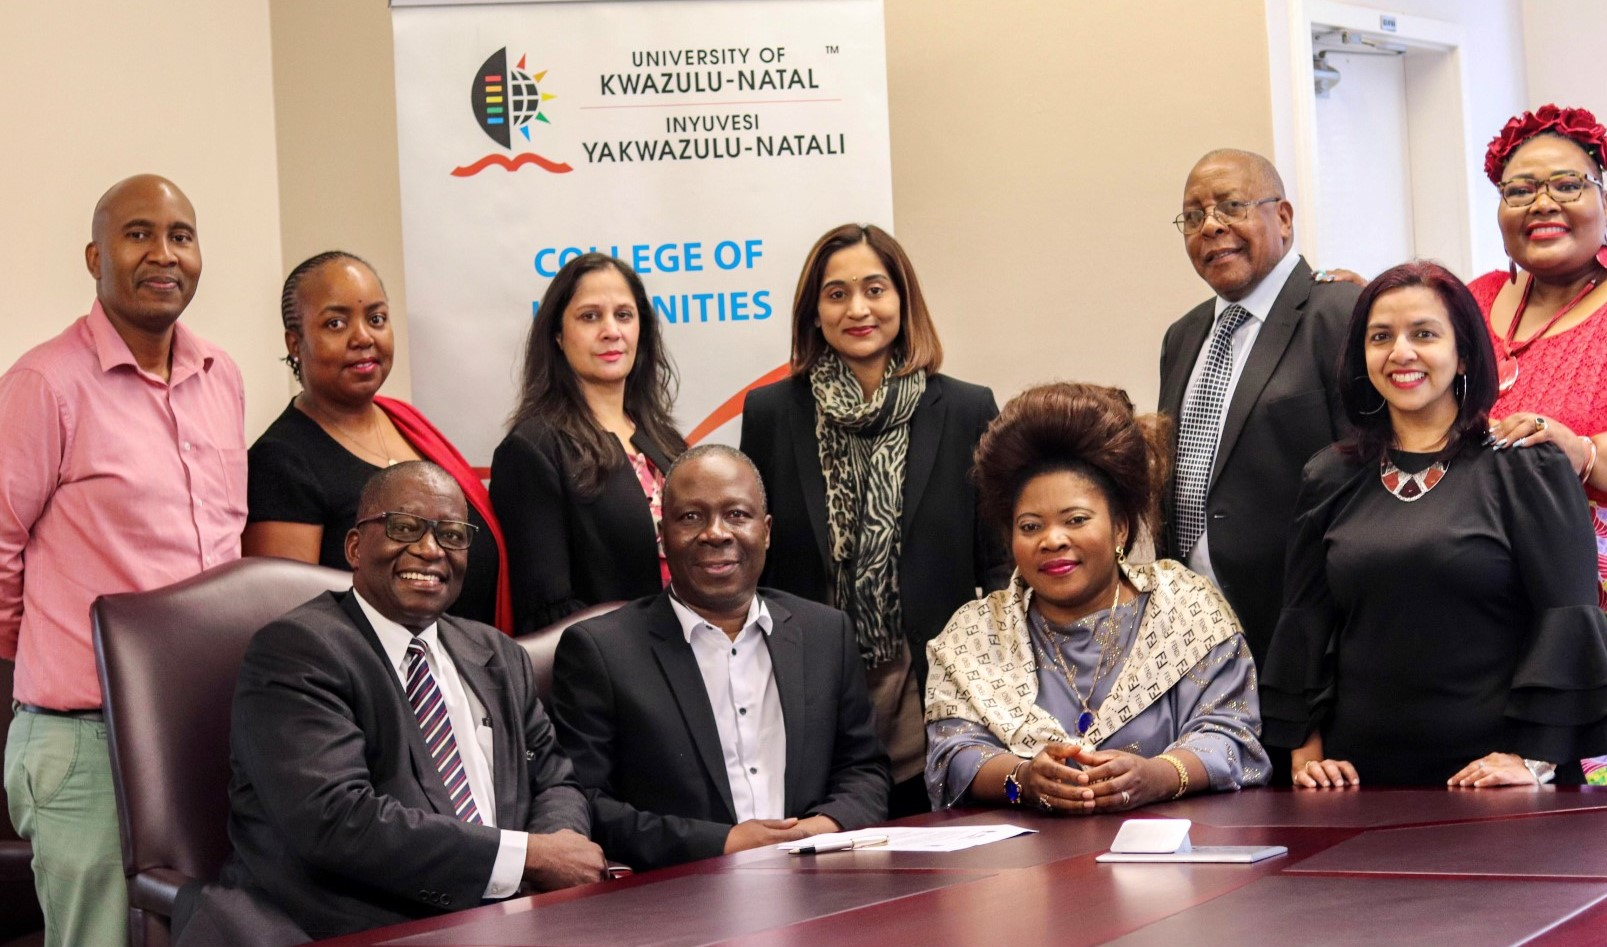 Representatives from UKZN and the University of Botswana